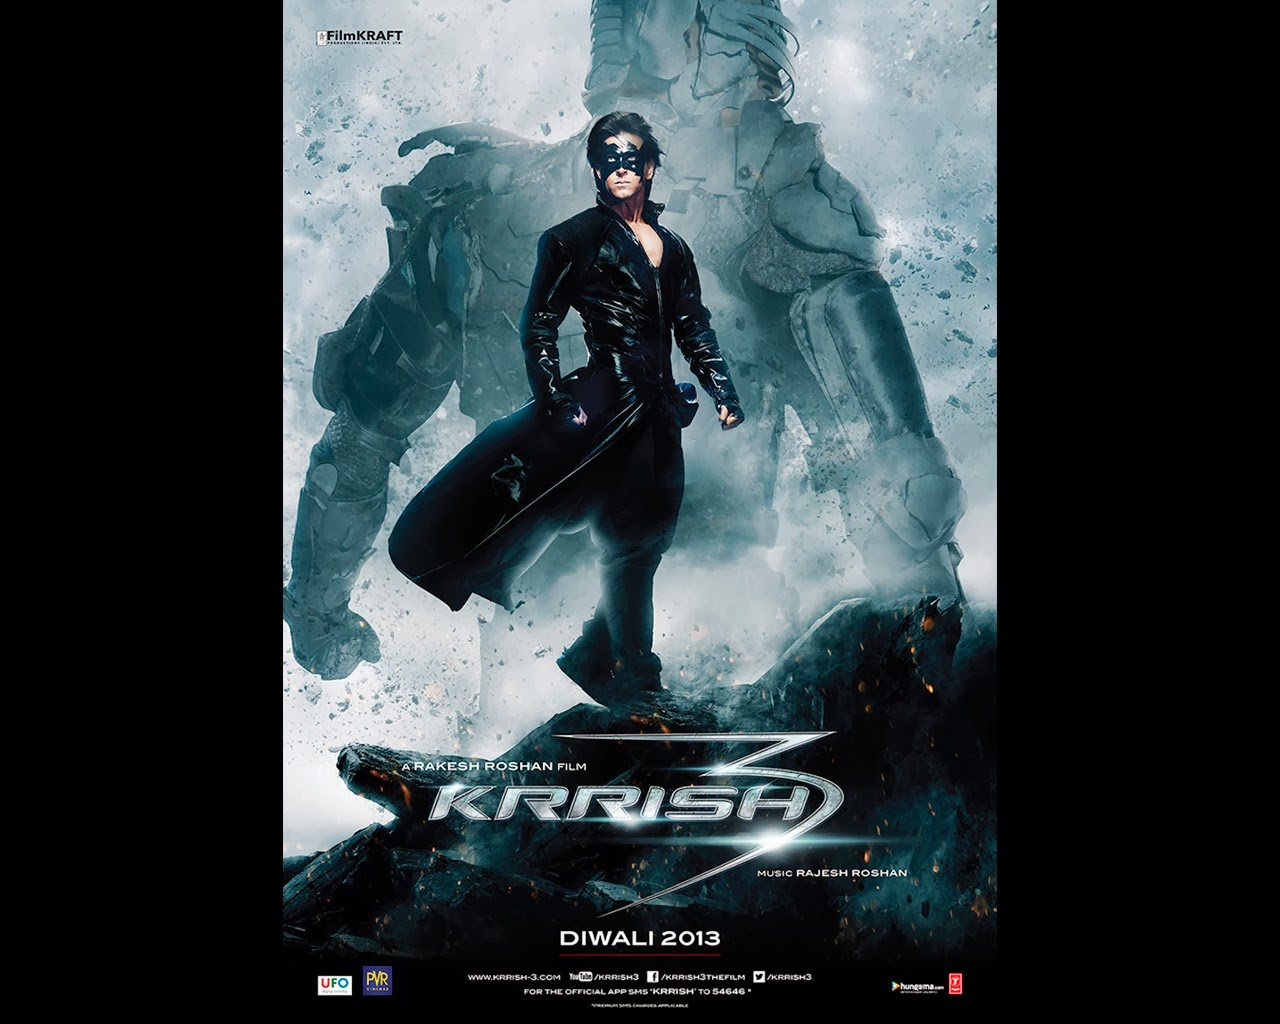 HD Wallpapers: Krrish 3 HD Wallpapers